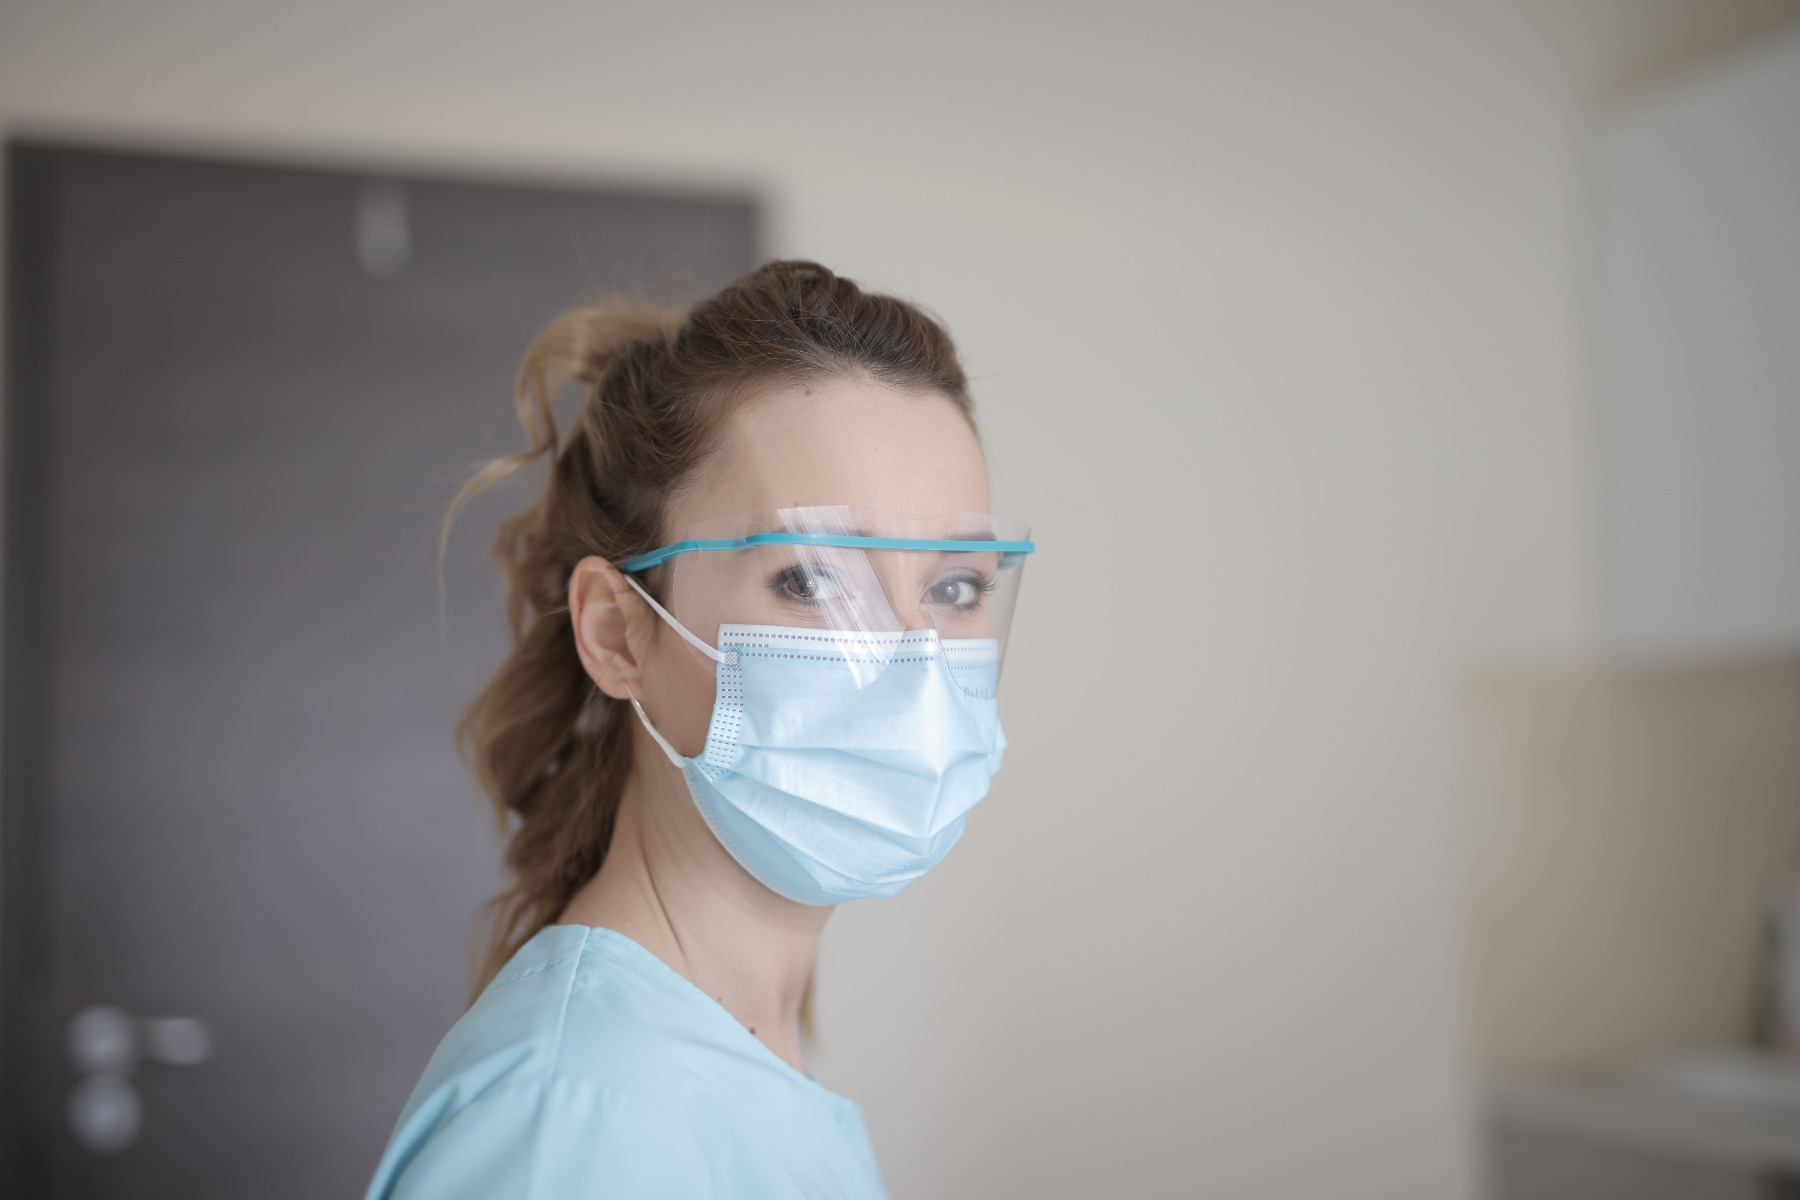 How to Prevent Coronavirus and Face Mask Use Tips